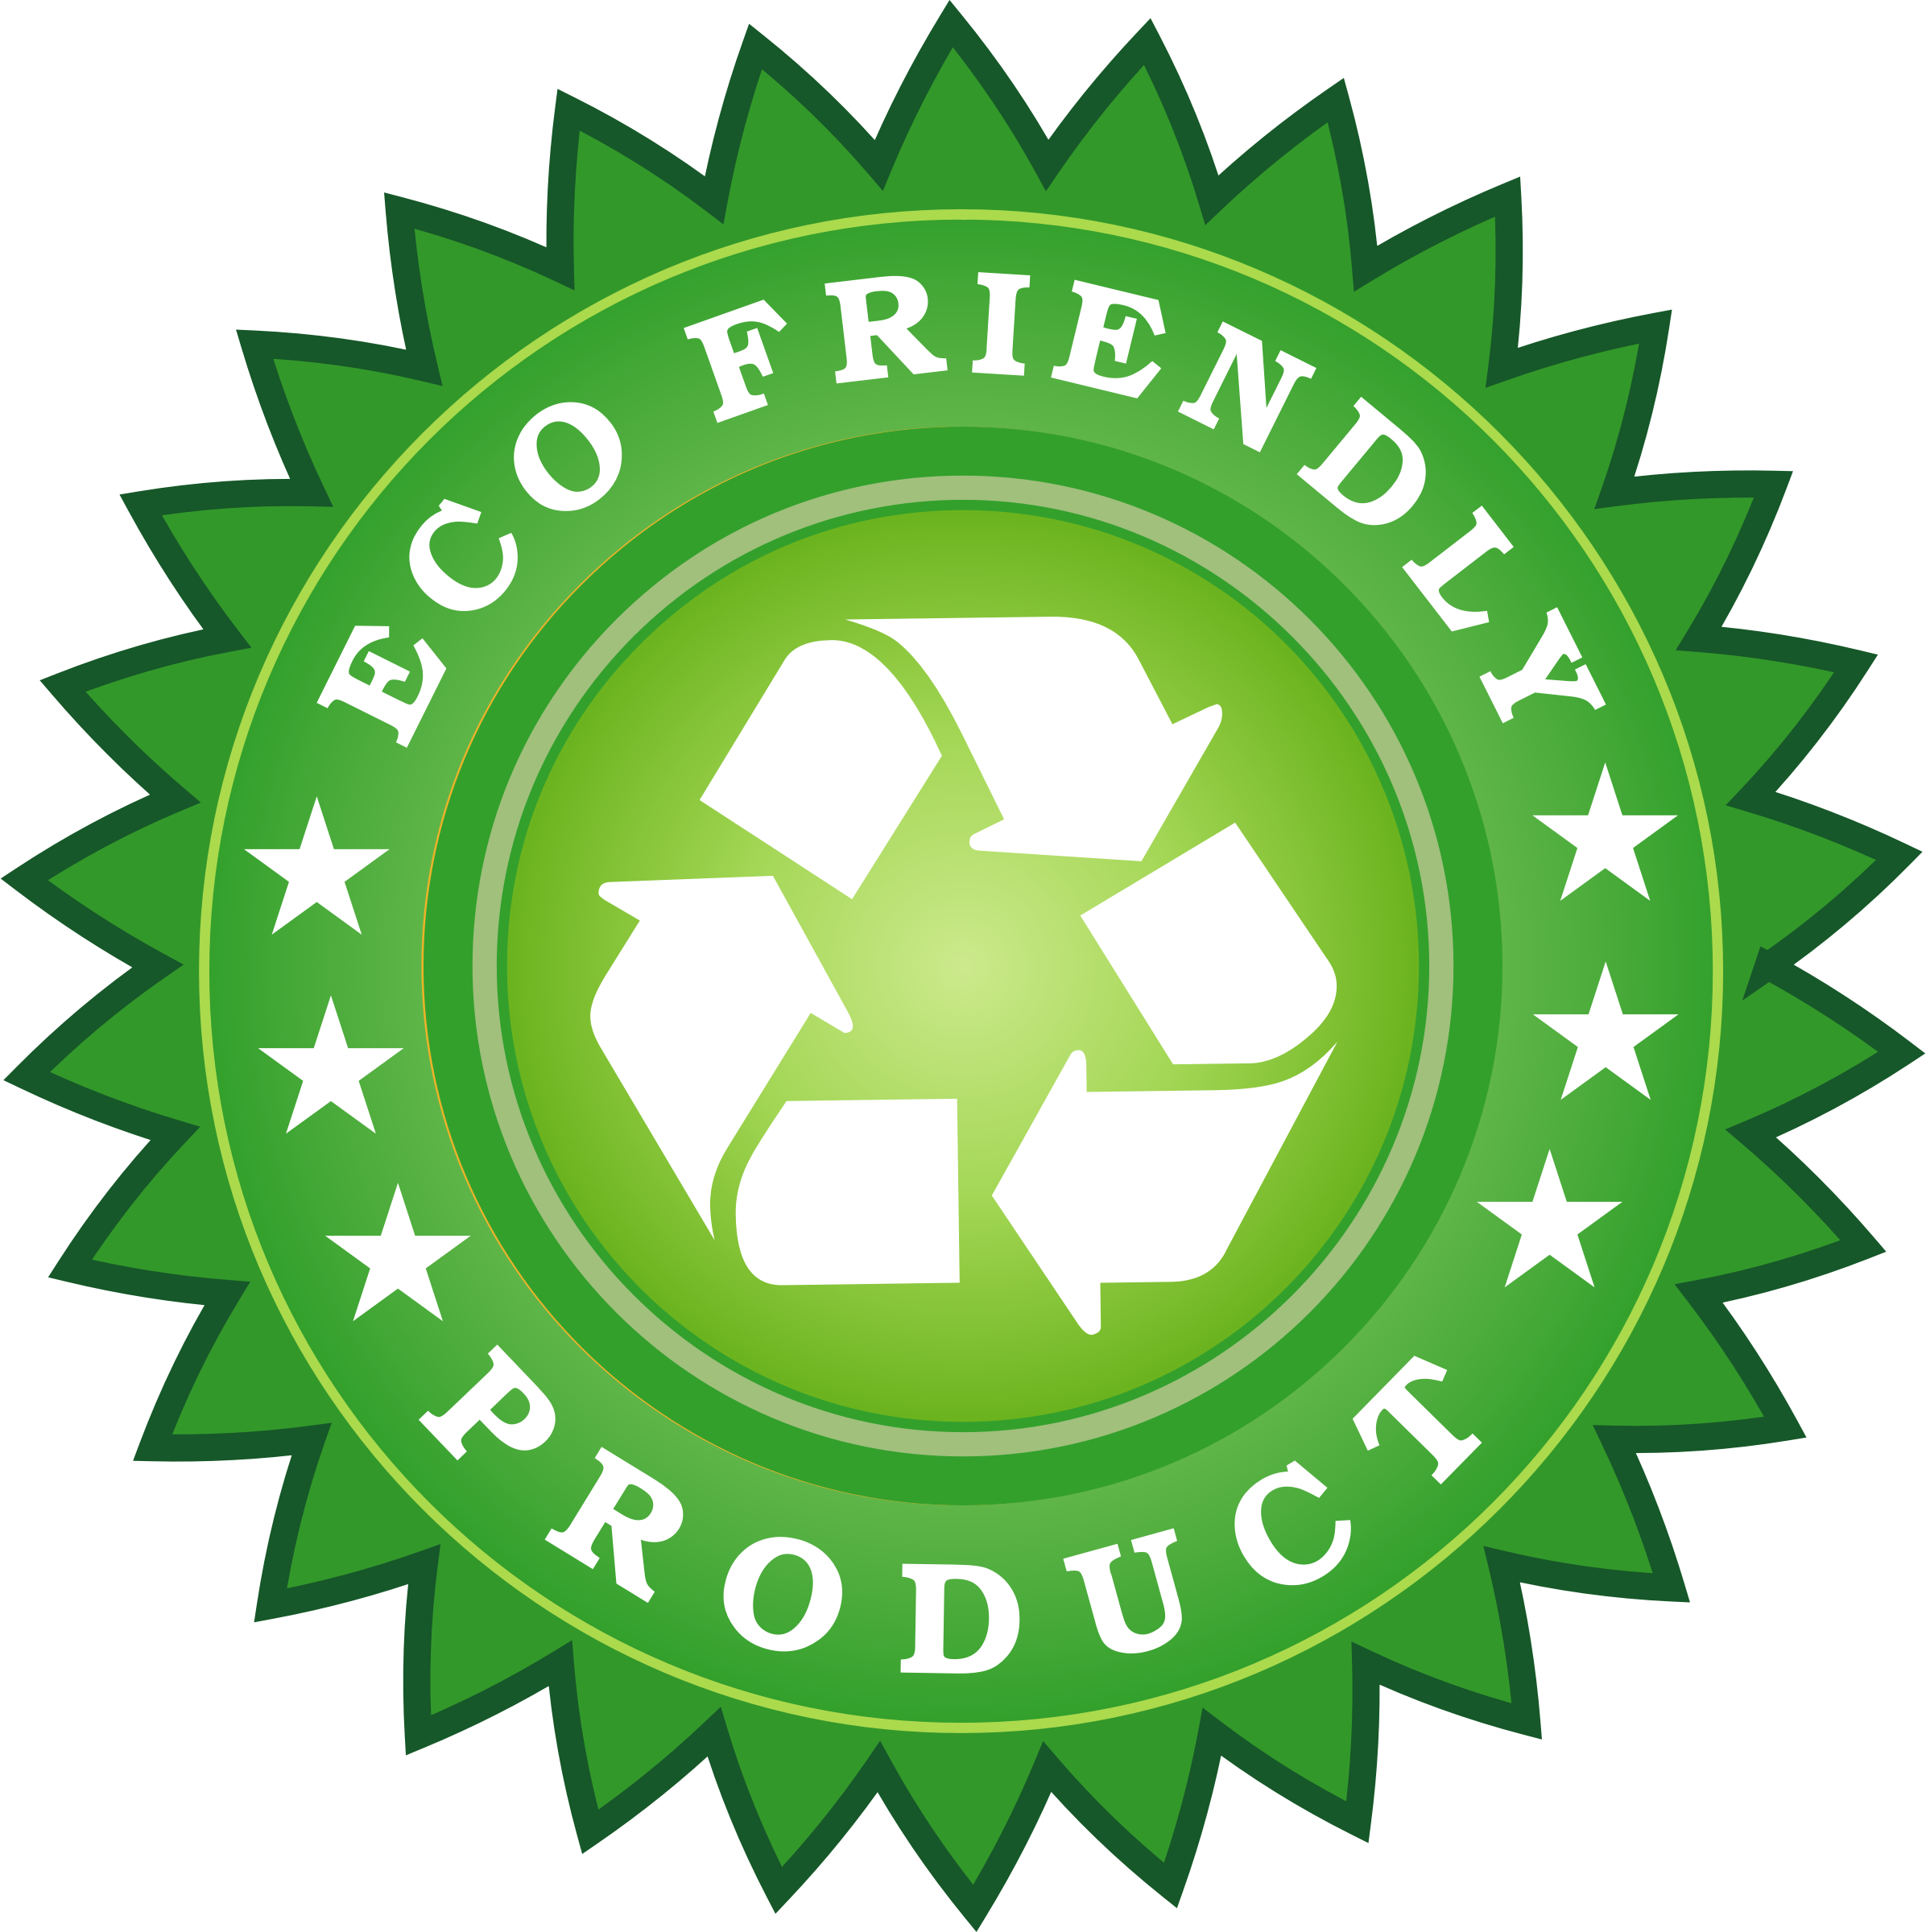 Ecology Friendly Product Sticker by vectorportal